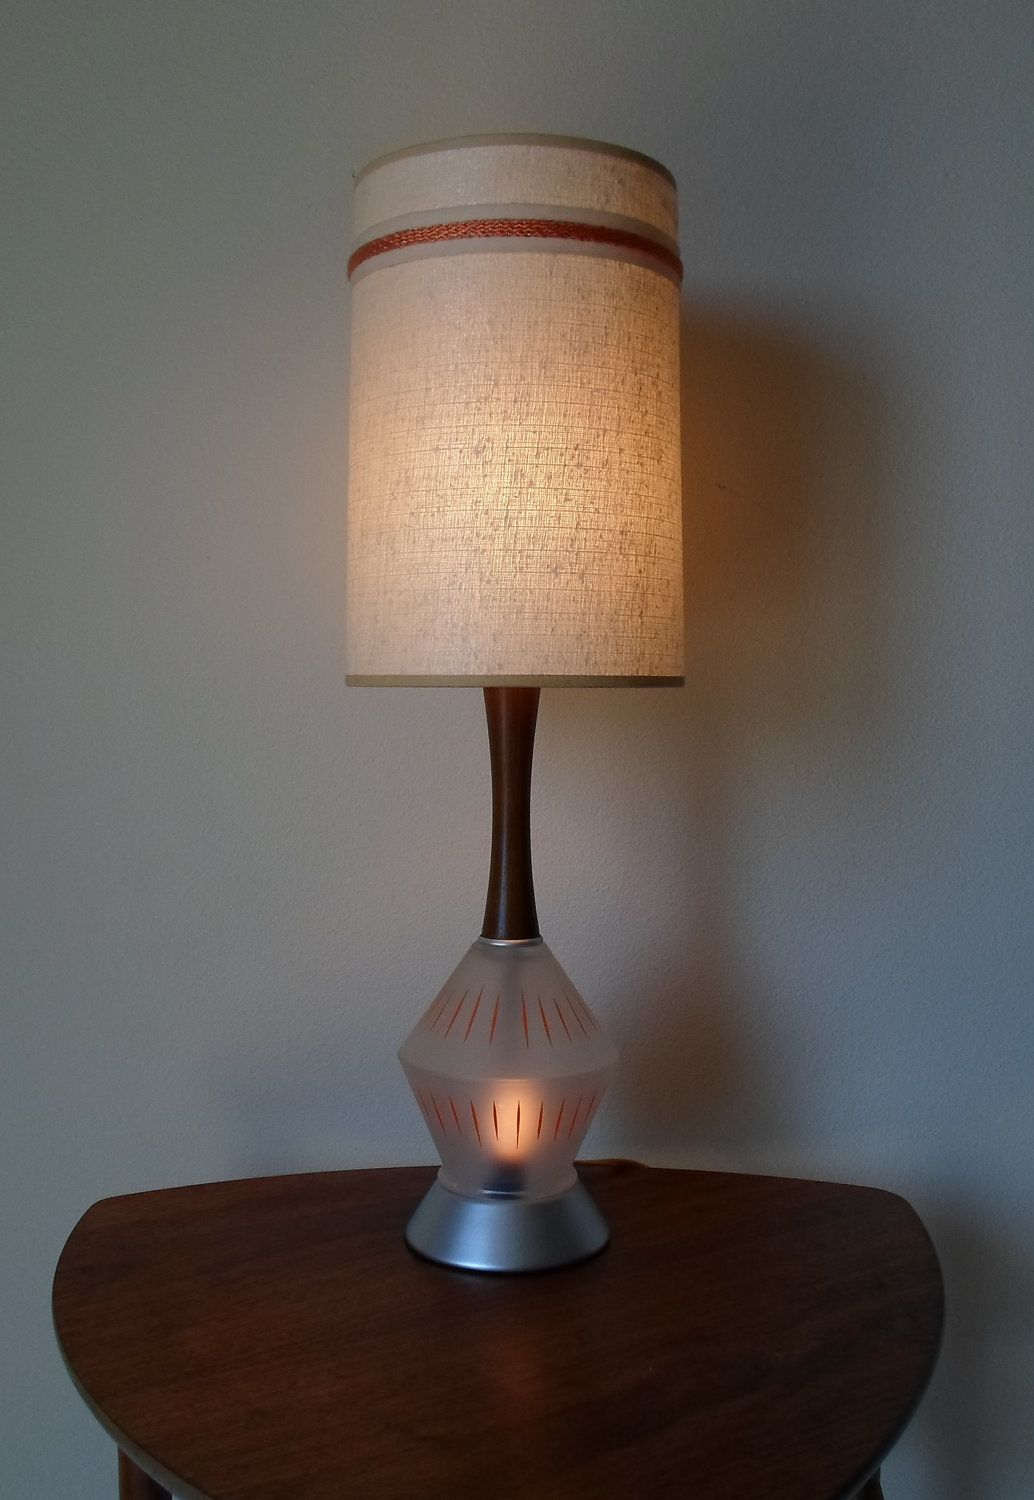 Vintage Mid Century Modern Table Lamp With Lamp Shade Frosted Glass Base Teak Or Walnut Ora Mid Century Modern Table Lamps Night Light Lamp Vintage Lighting